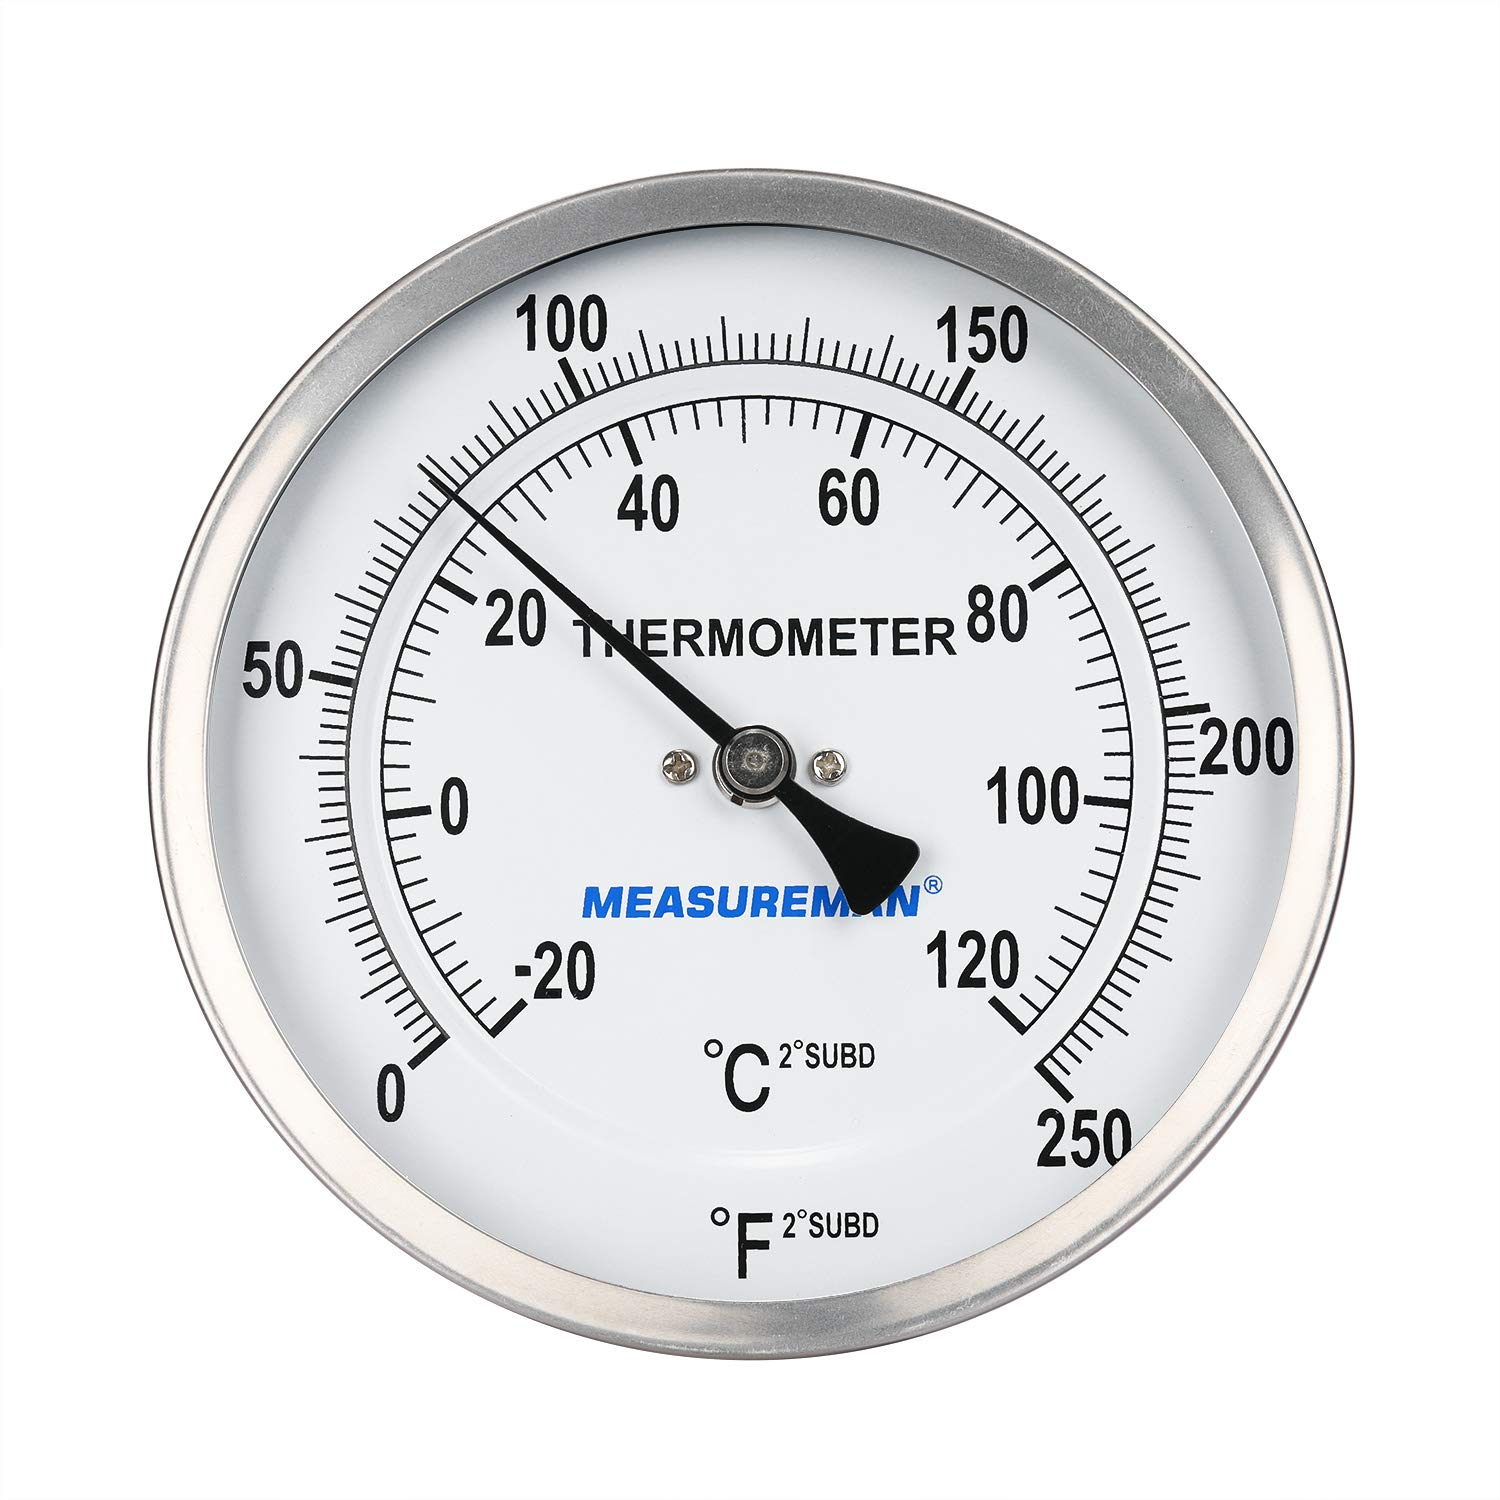 Measureman Every Angle Fully Stainless Steel Pot, Kettle, Brewing Dial Industrial Bimetal Thermometer, 5